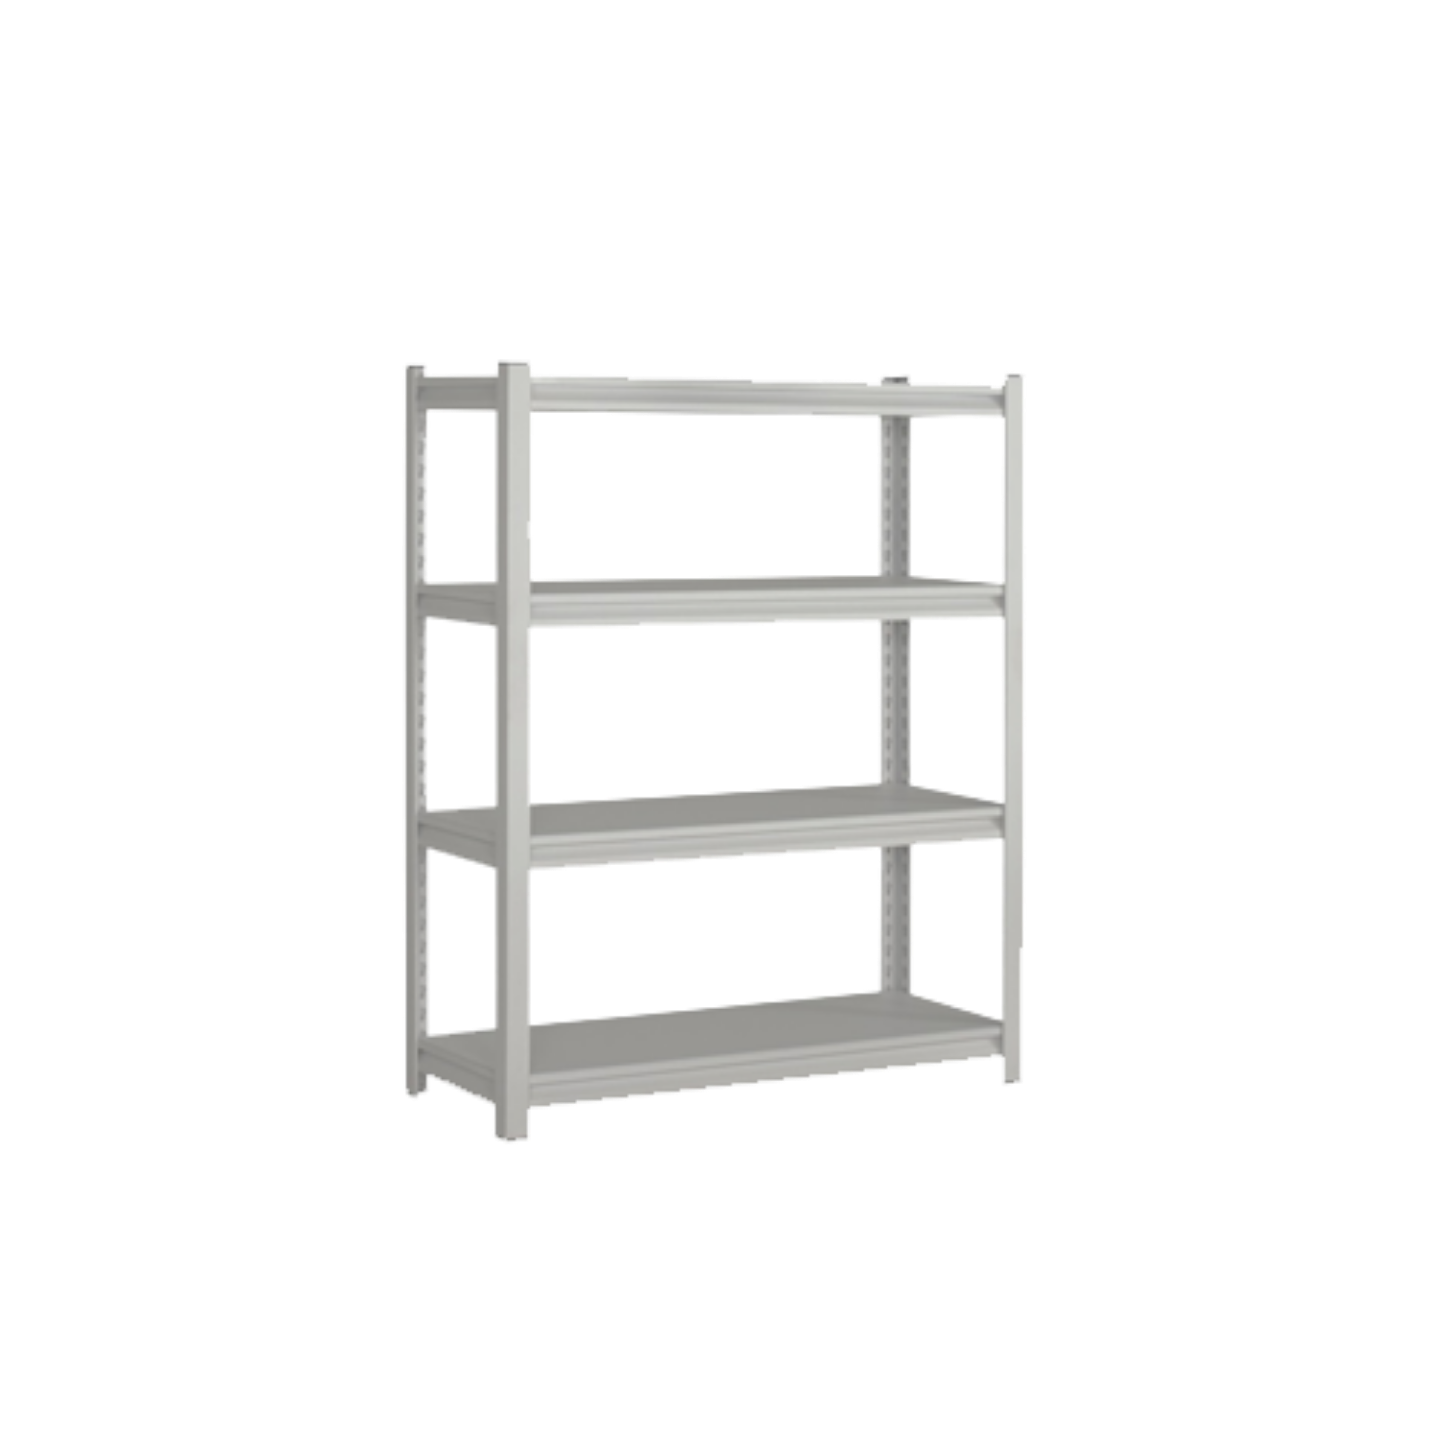 3ft - 4 Tiers Boltless Rack (H920)